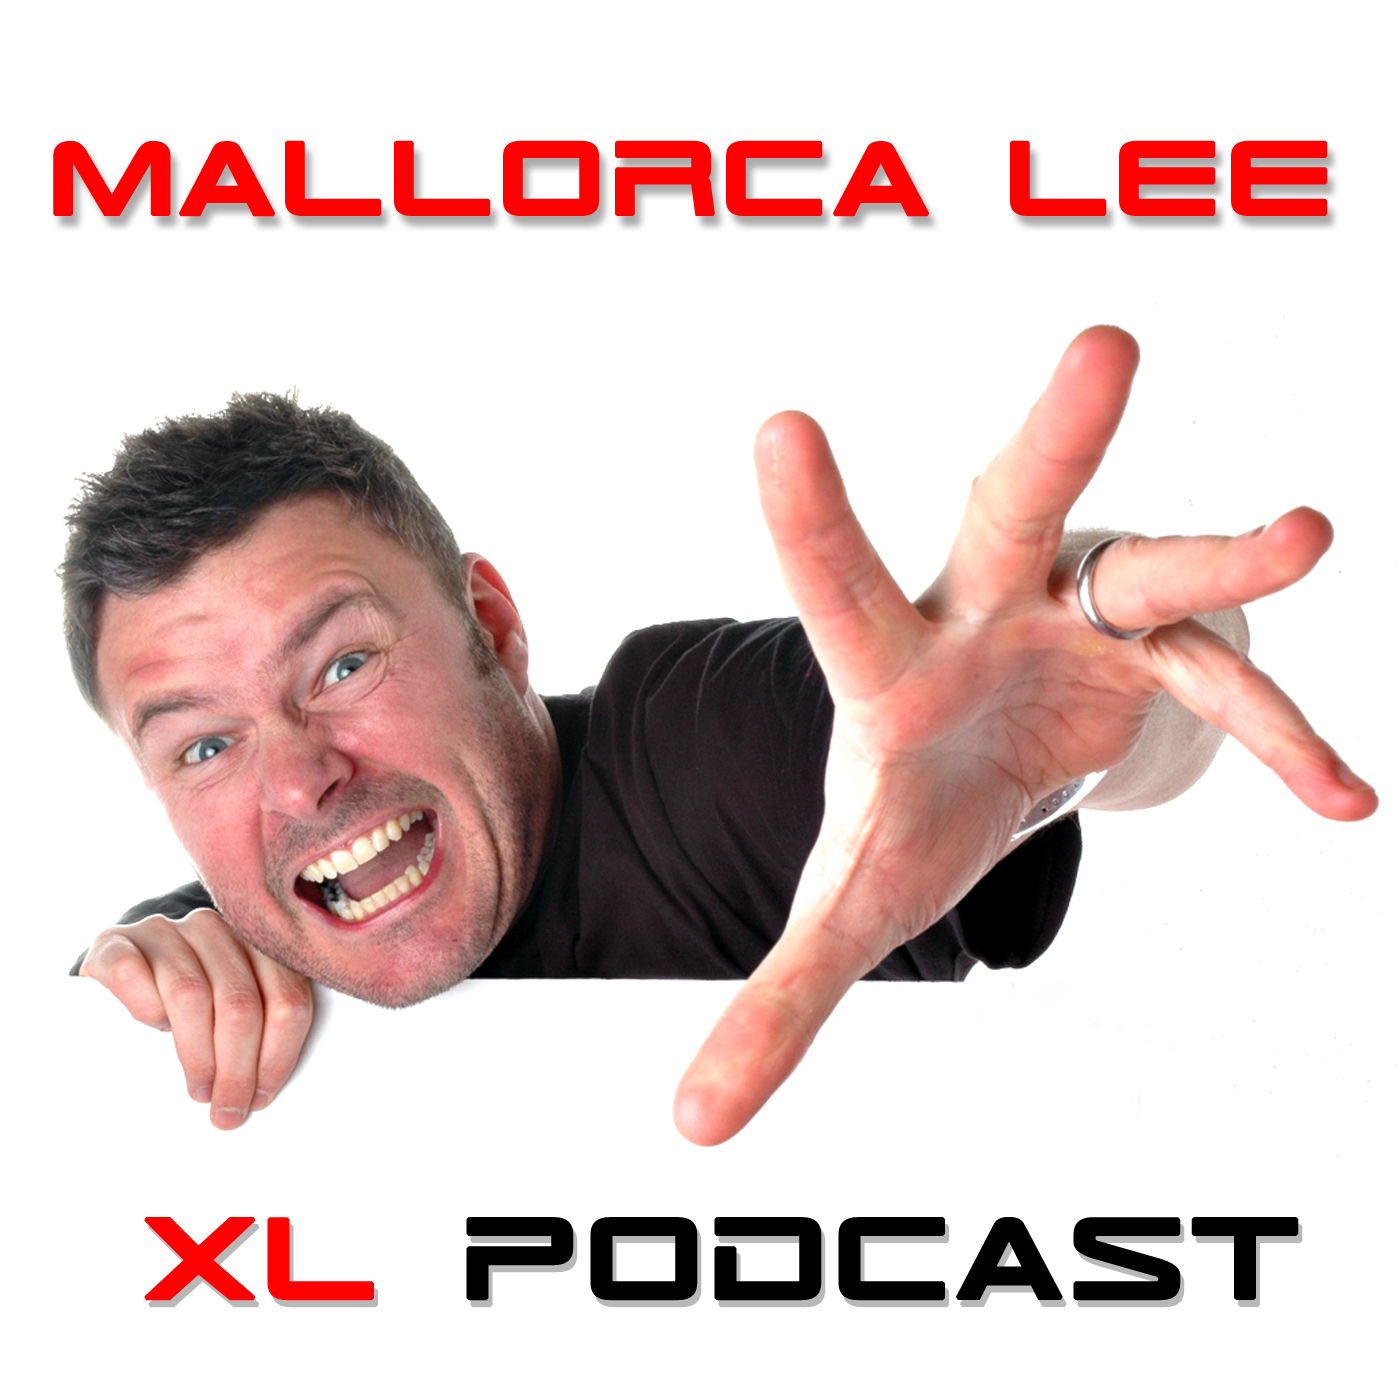 Mallorca Lee's XL Podcast